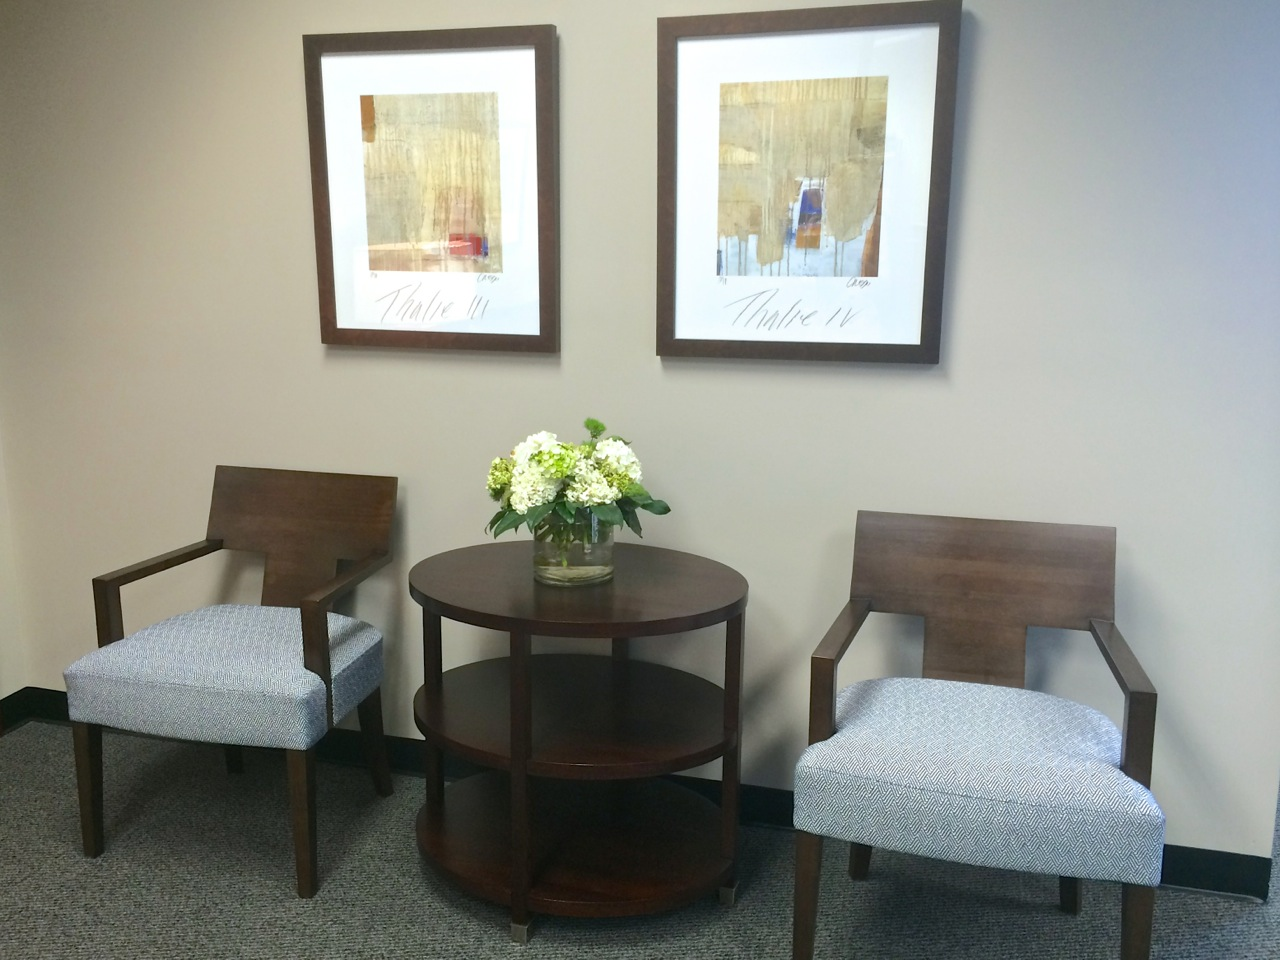 Commercial Interior Design Law Firm.jpg